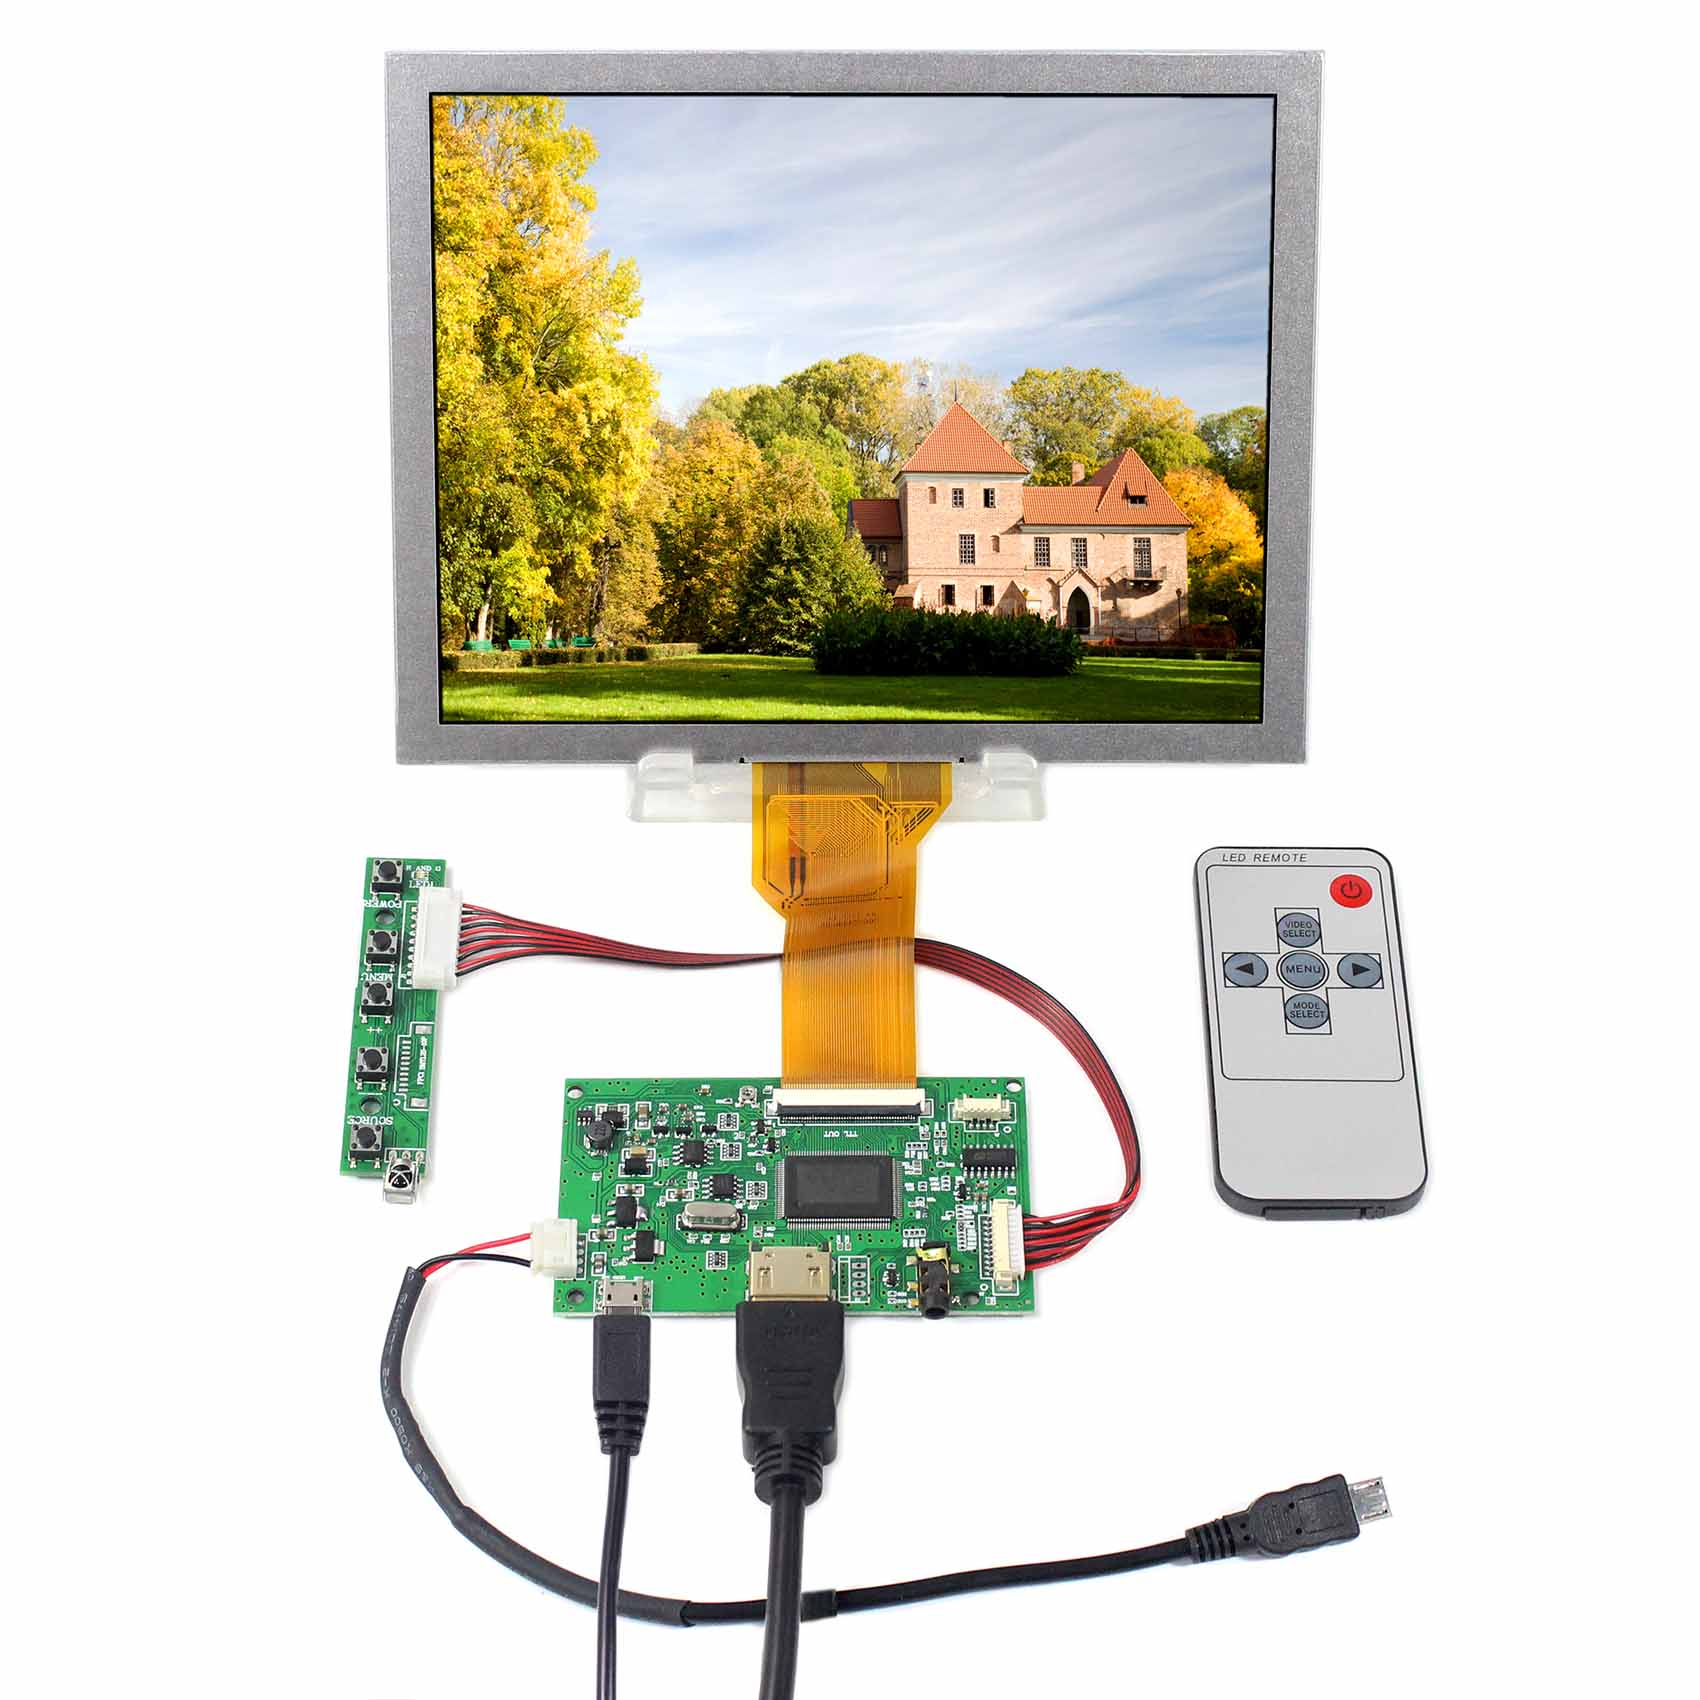 8 inch 800X600 LCD Screen  EJ080NA-05B with HDMI LCD Controller Board  Fit To Raspberry Pi8 inch 800X600 LCD Screen  EJ080NA-05B with HDMI LCD Controller Board  Fit To Raspberry Pi